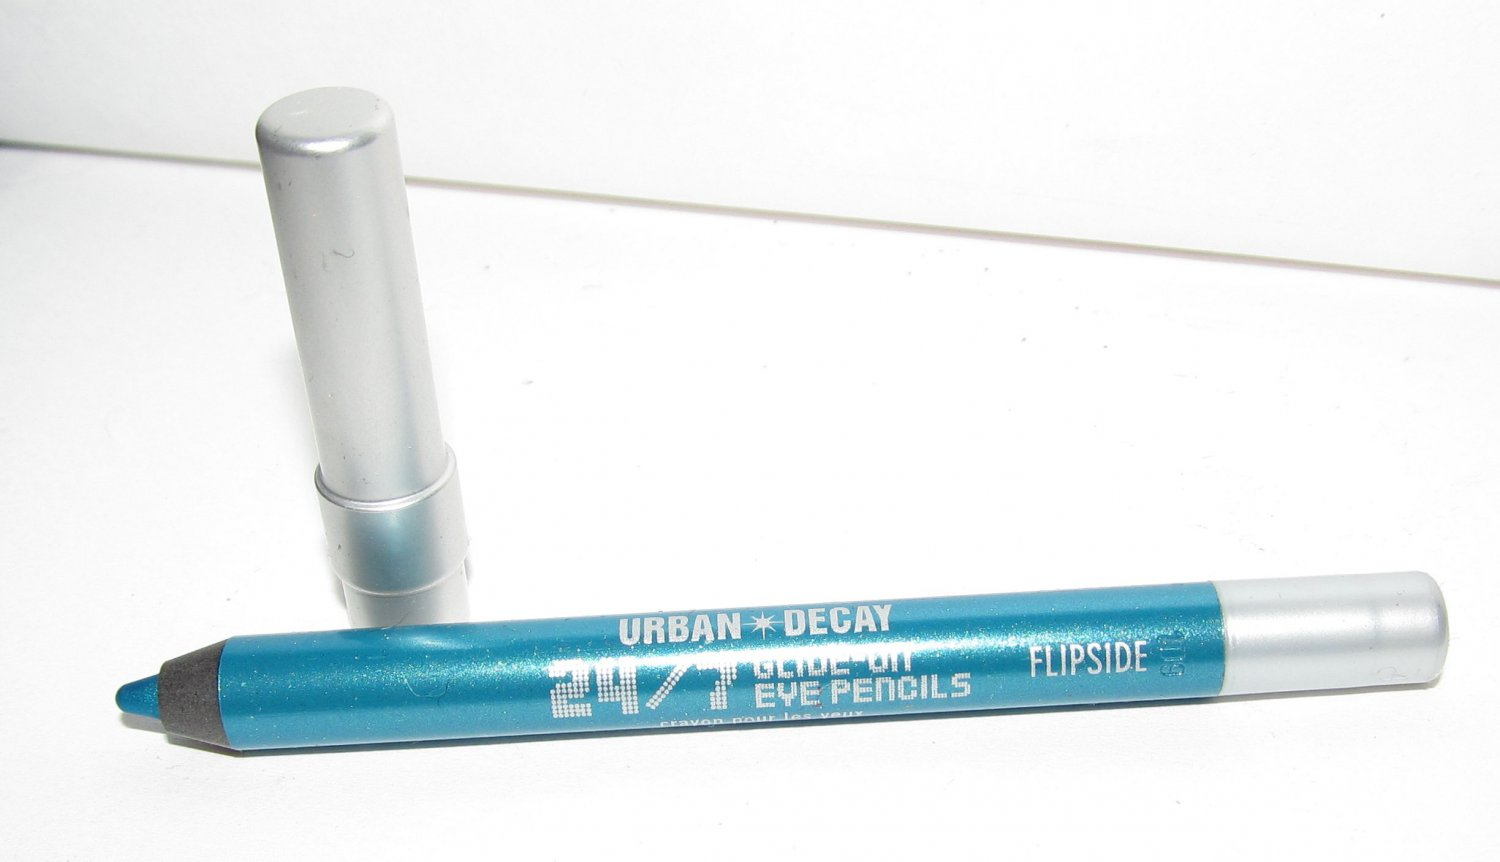 Urban Decay - VIP 24/7 Travel Size Eye Pencil - Flipside - NEW